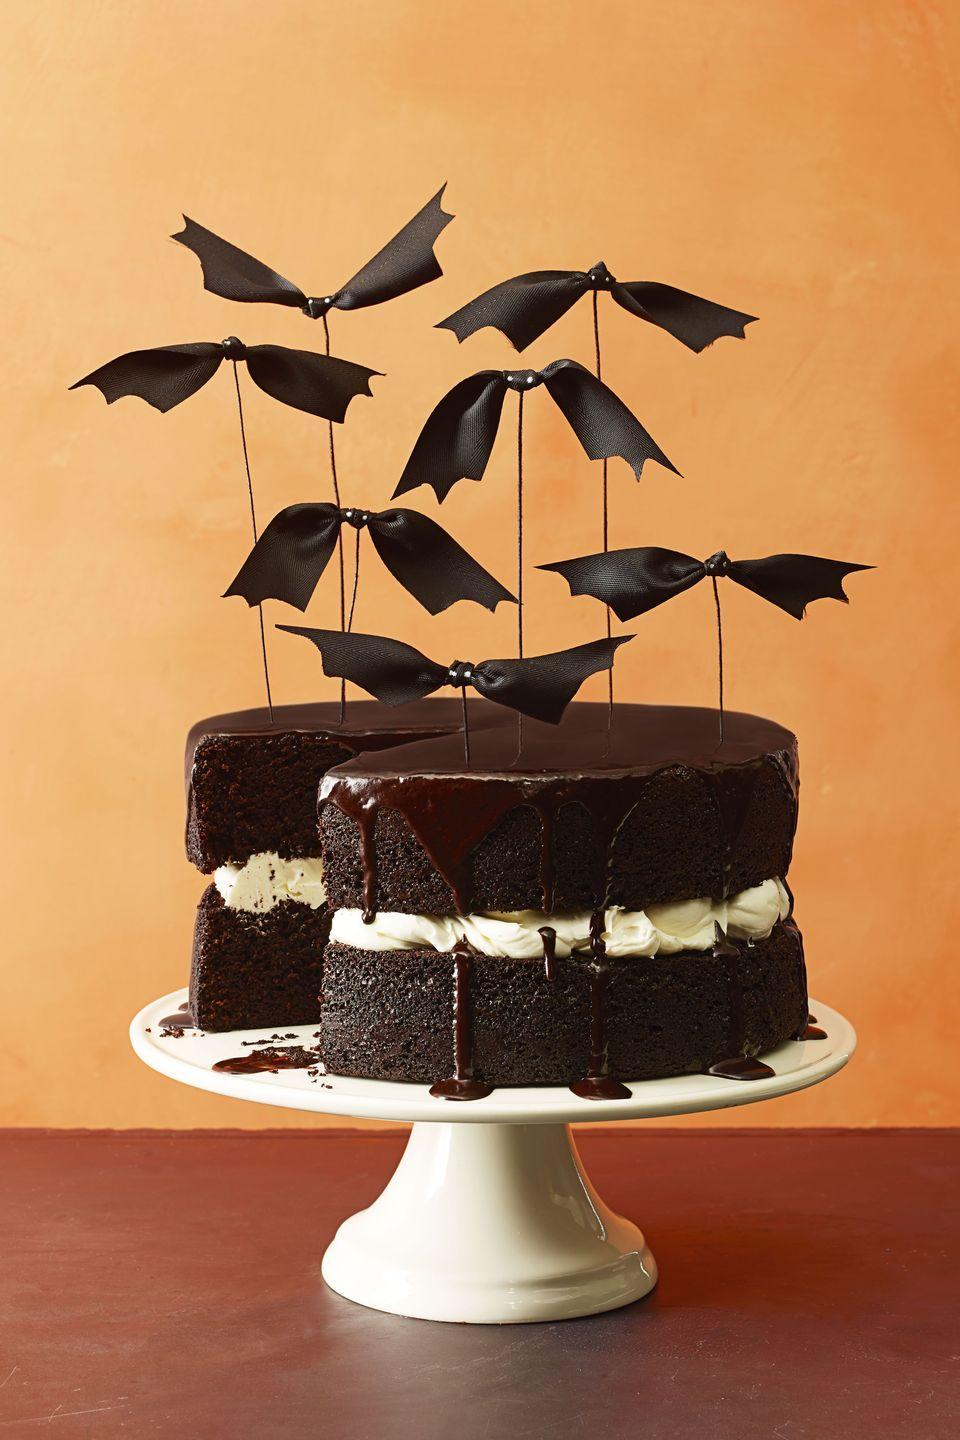 """<p>For a simple way to Halloween-ify a basic layer cake, use festive bat toppers (these can be easily made with ribbon and wire!).</p><p><em><a href=""""https://www.goodhousekeeping.com/food-recipes/a16014/chocolate-pumpkin-cake-recipe-ghk1014/"""" rel=""""nofollow noopener"""" target=""""_blank"""" data-ylk=""""slk:Get the recipe for Chocolate Pumpkin Cake »"""" class=""""link rapid-noclick-resp"""">Get the recipe for Chocolate Pumpkin Cake »</a></em></p>"""